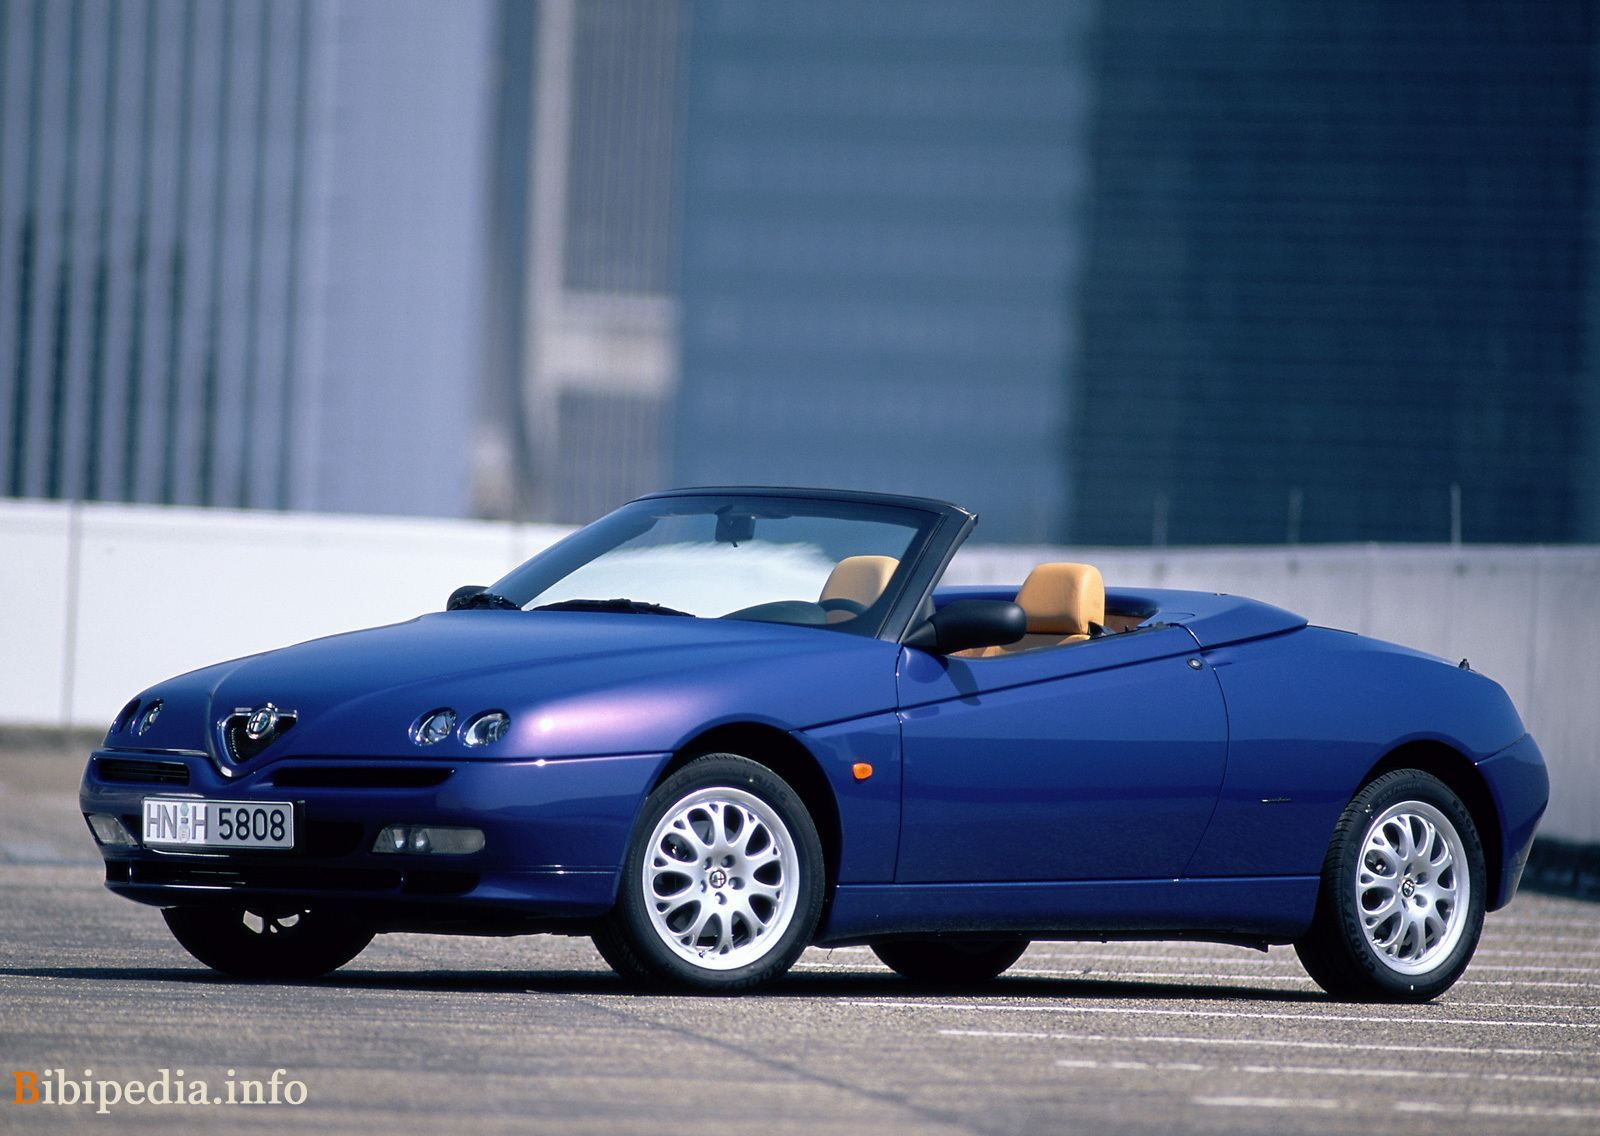 2003 Alfa Romeo Spider photo - 1